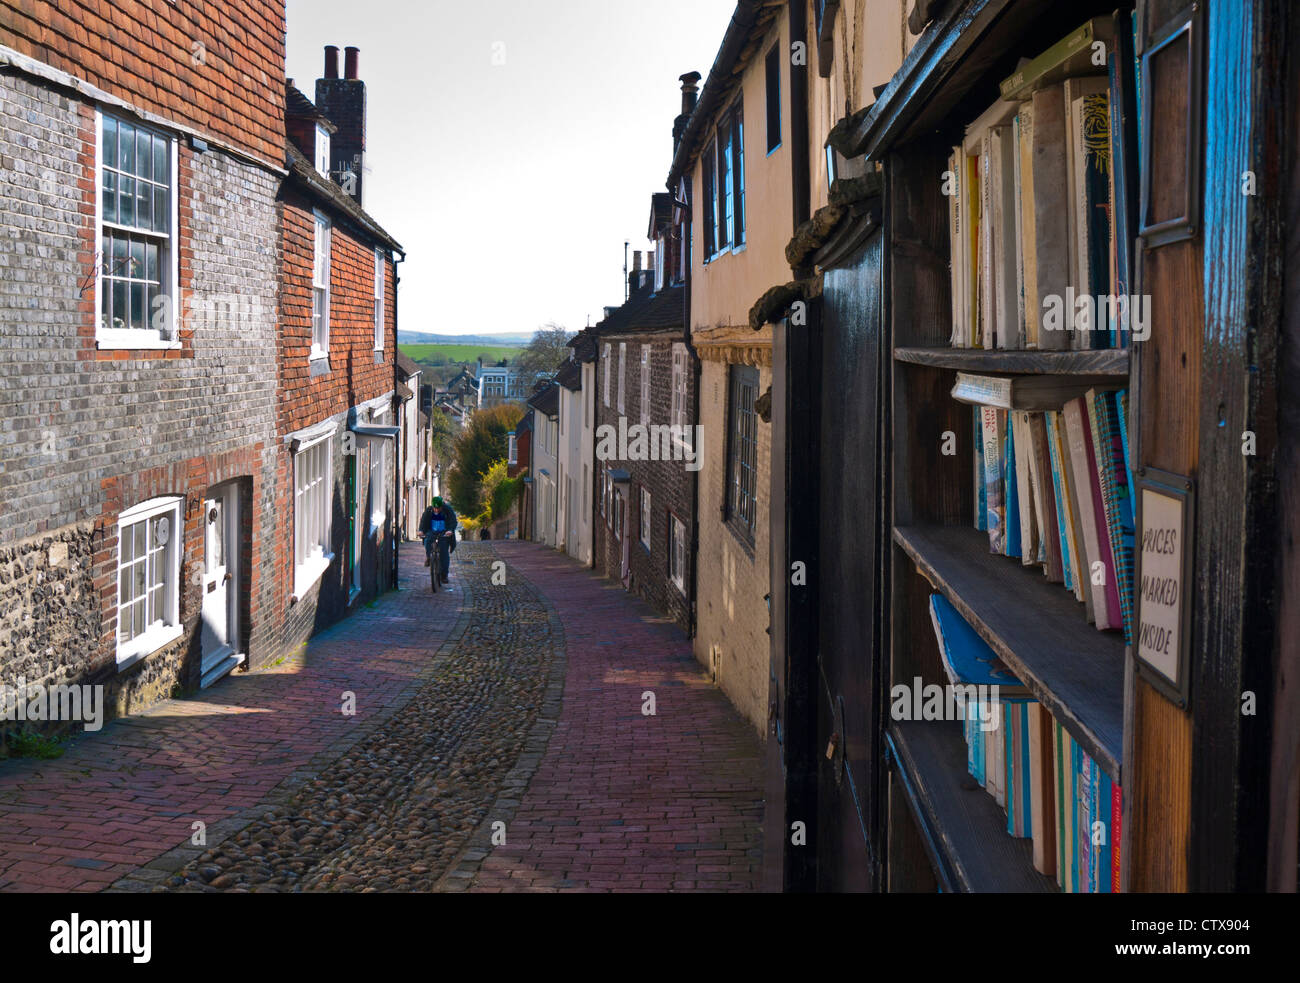 View down historic cobbled Keere Street with bookshop in foreground Lewes Sussex UK Stock Photo